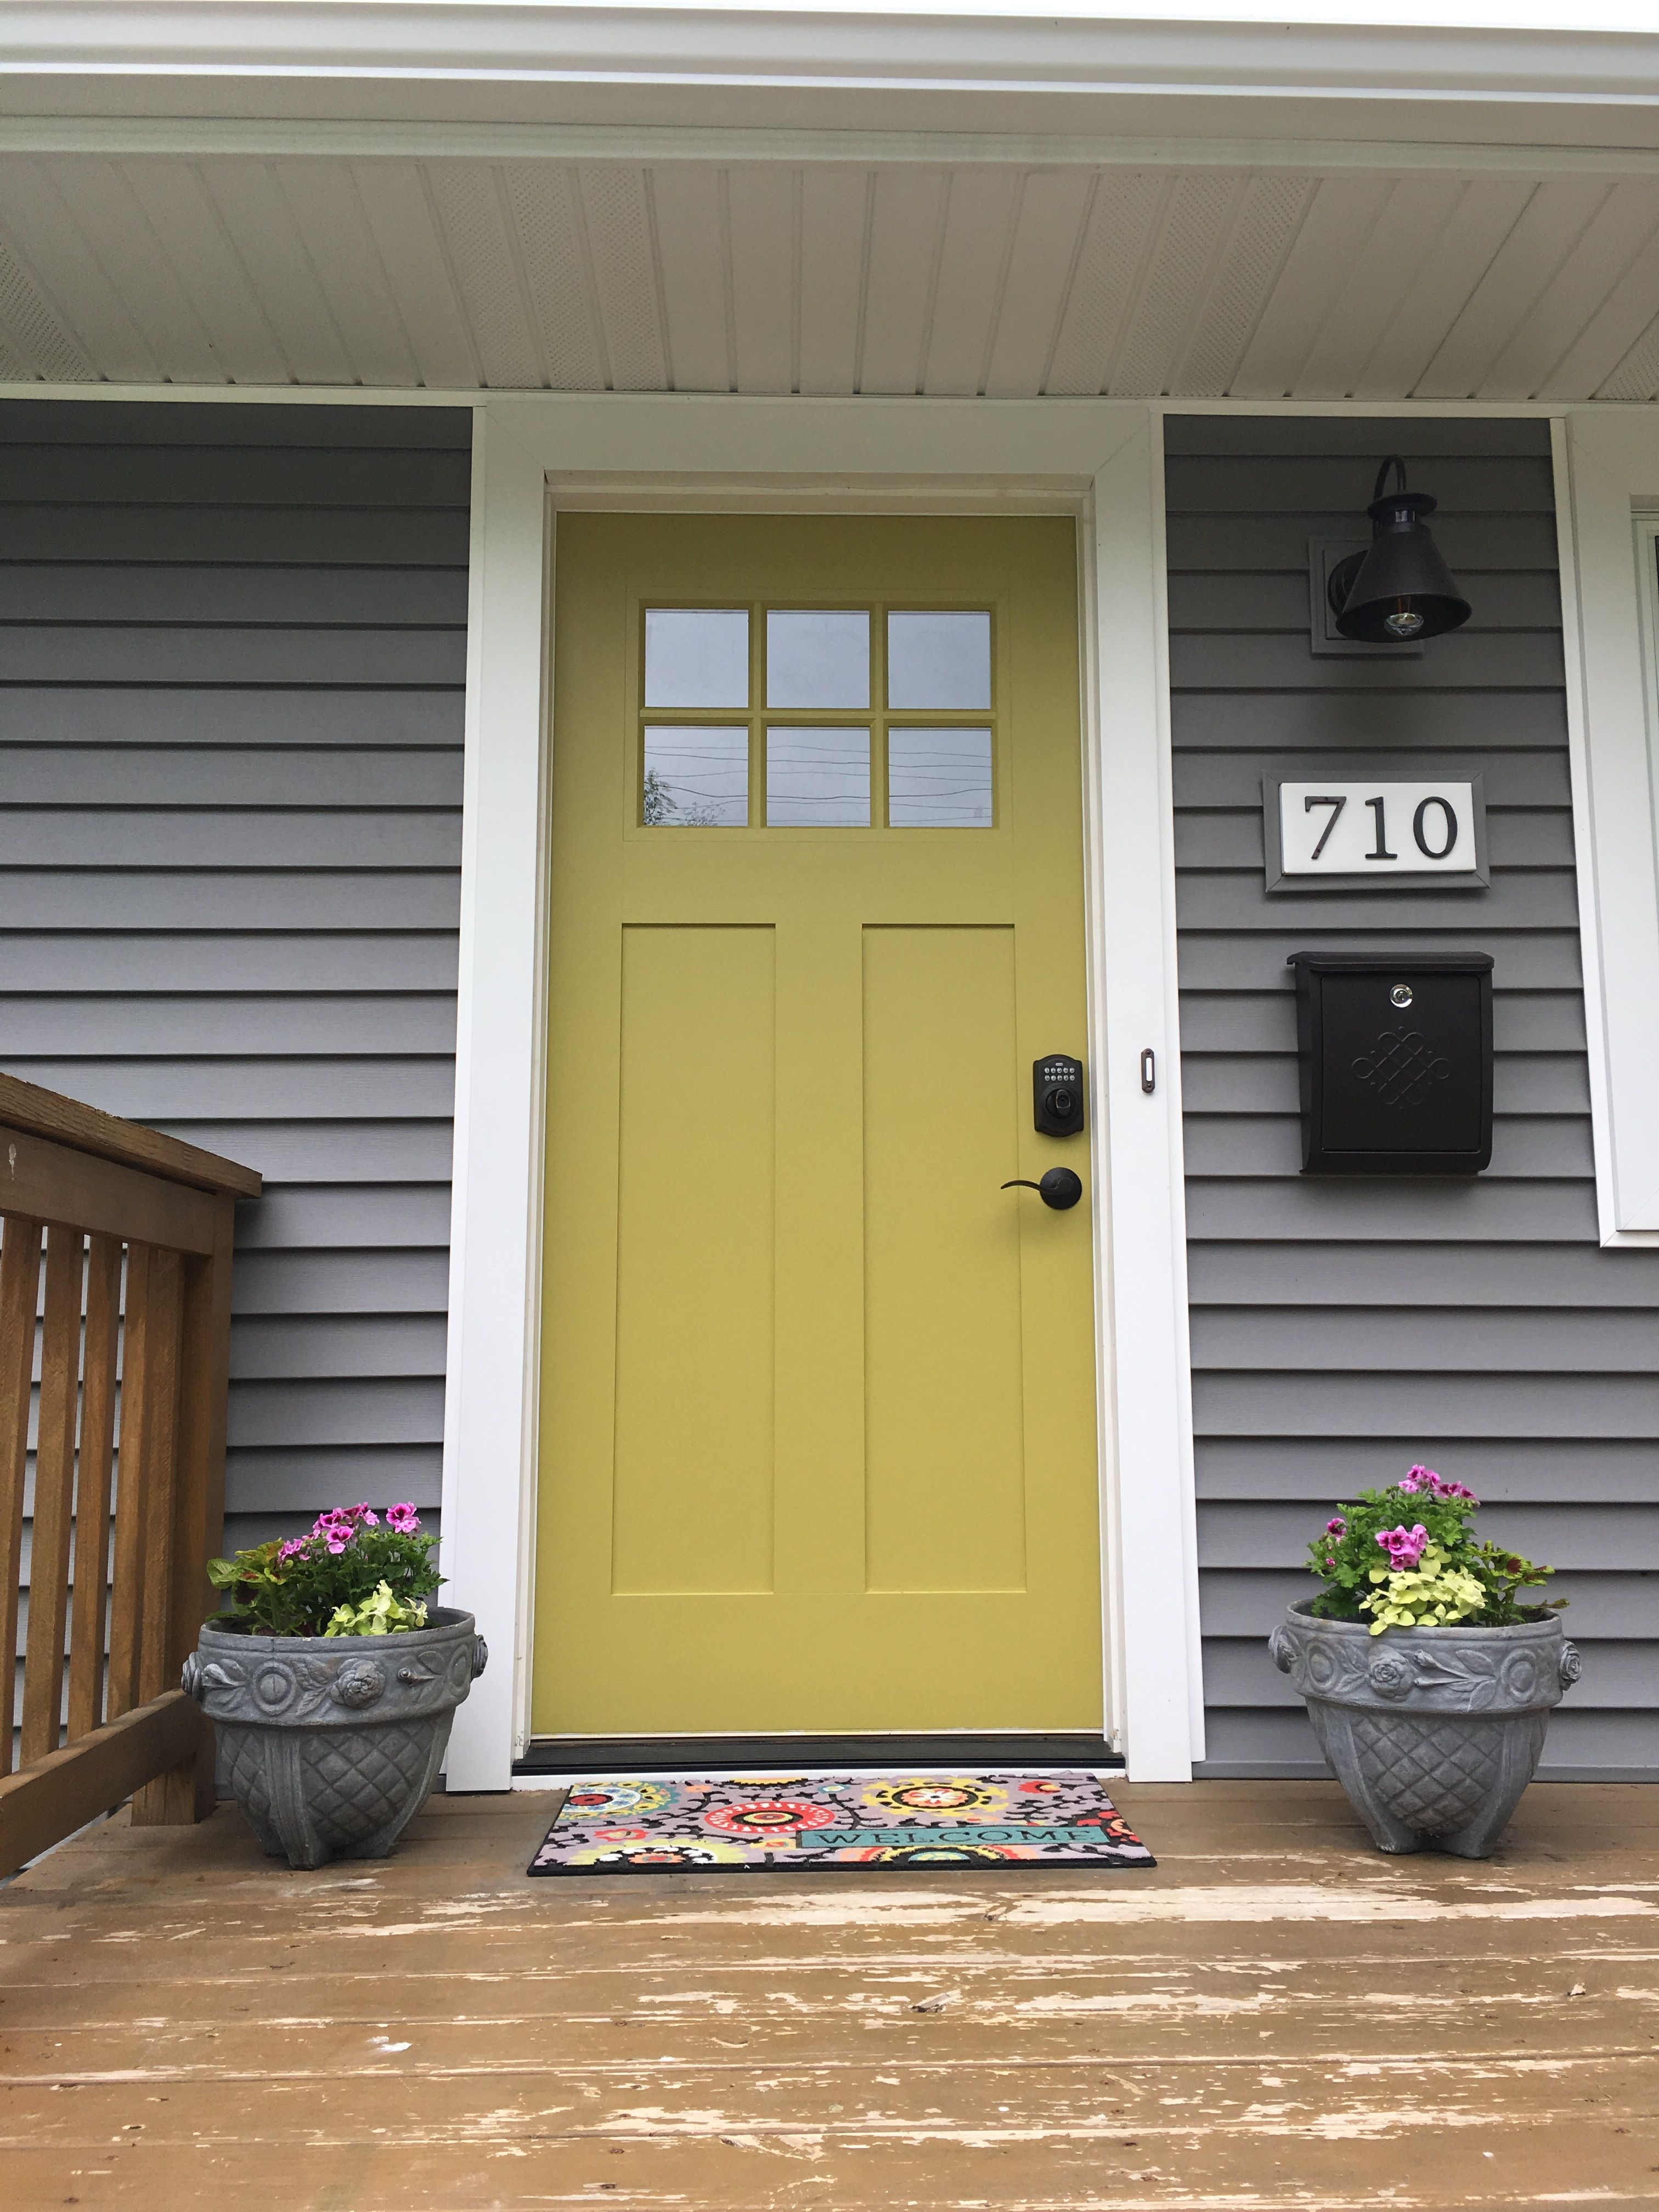 Le Meilleur Antiquity By Sherwin Williams Front Door With Charcoal Ce Mois Ci